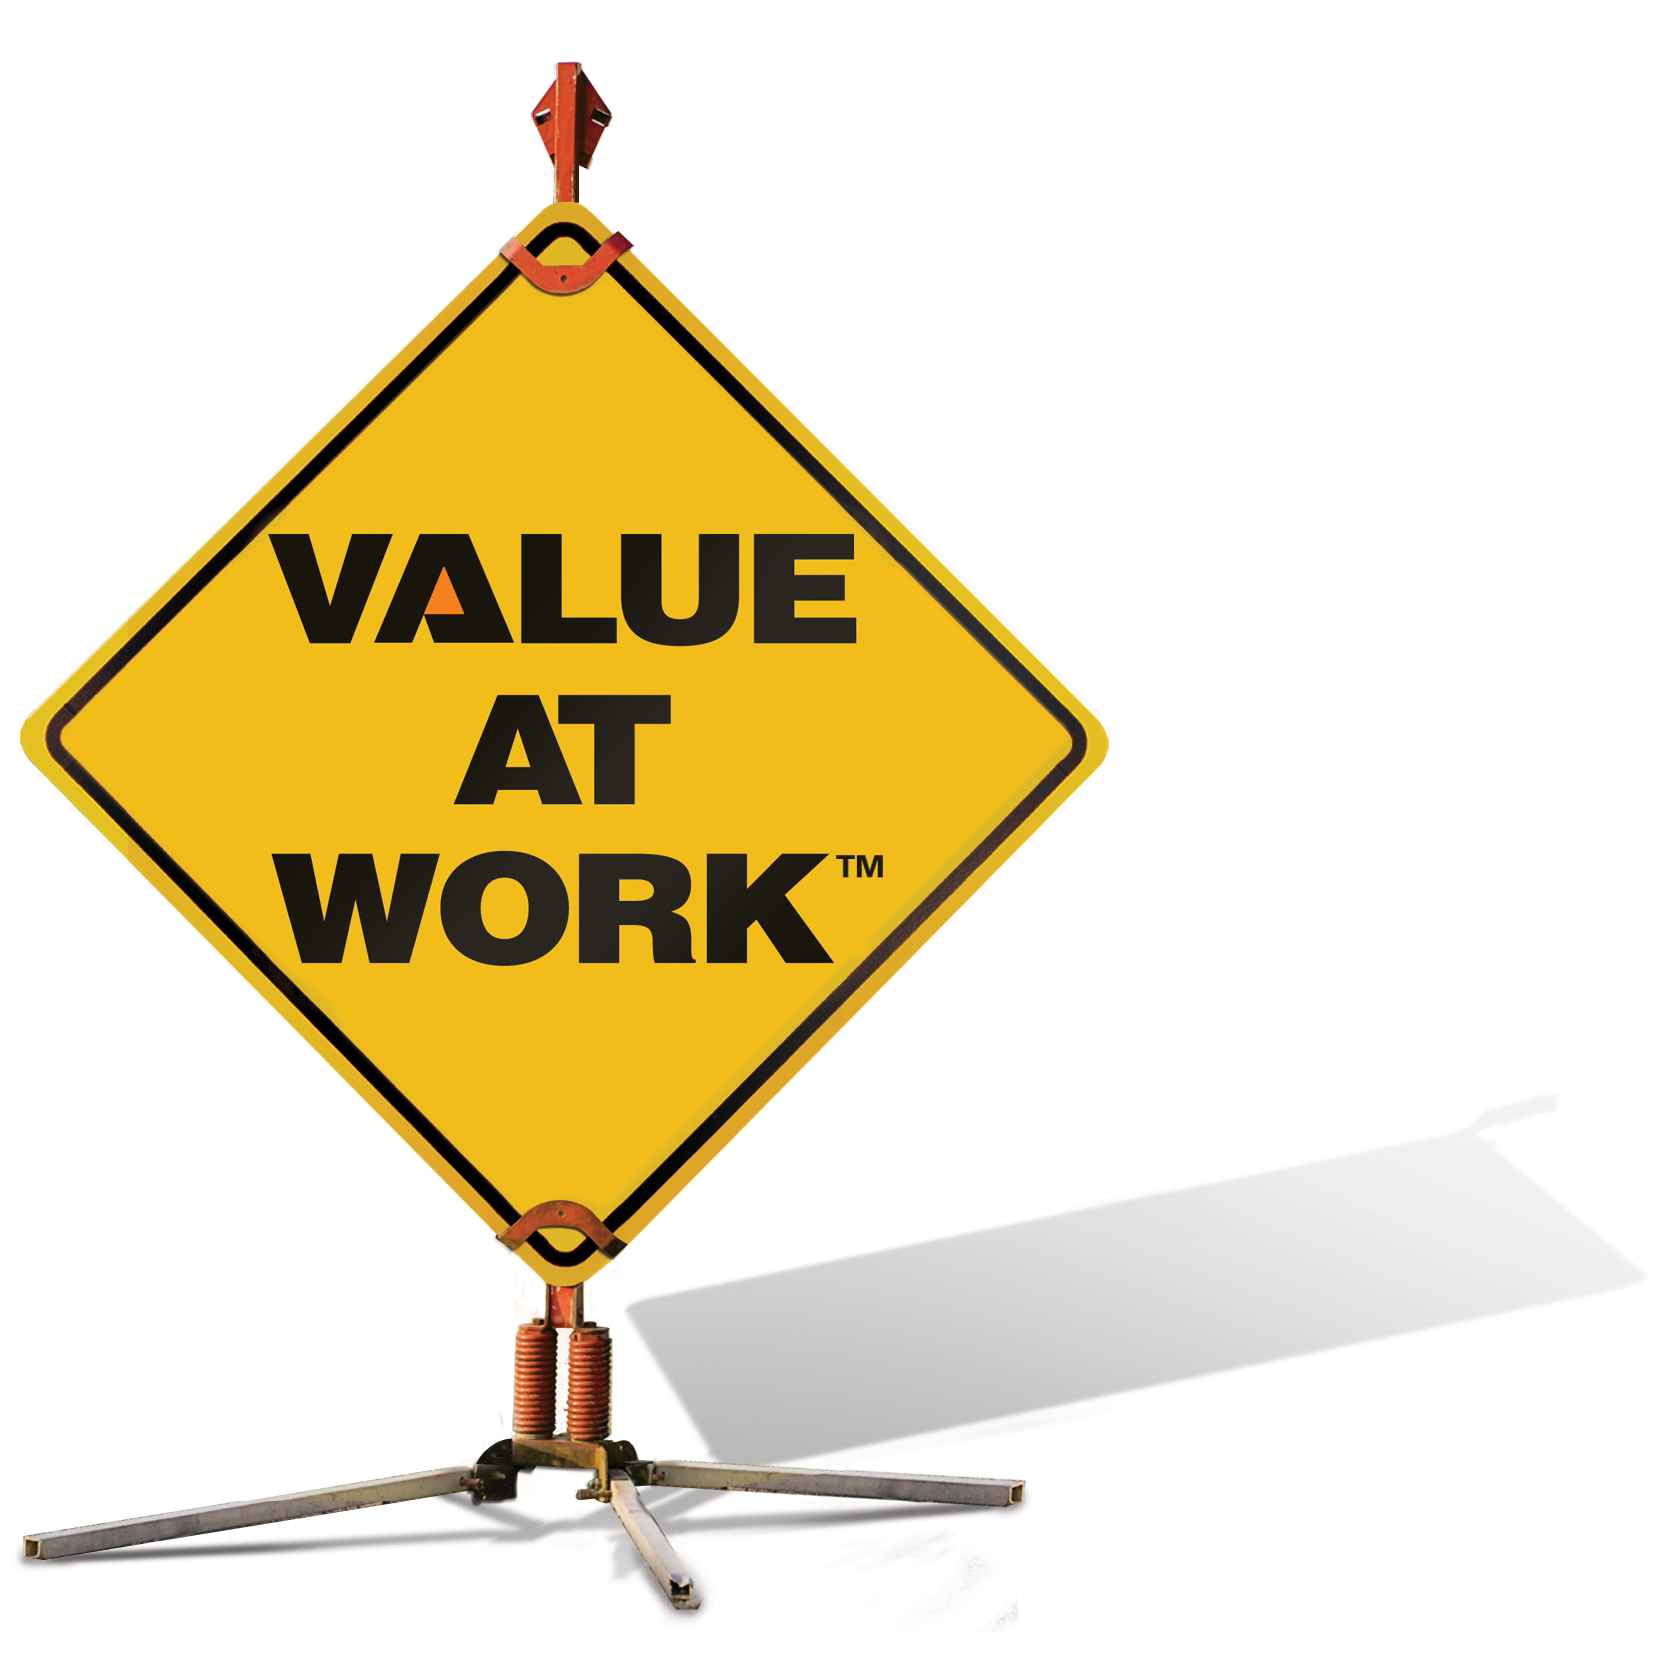 value engineering examples file available value engineering examples